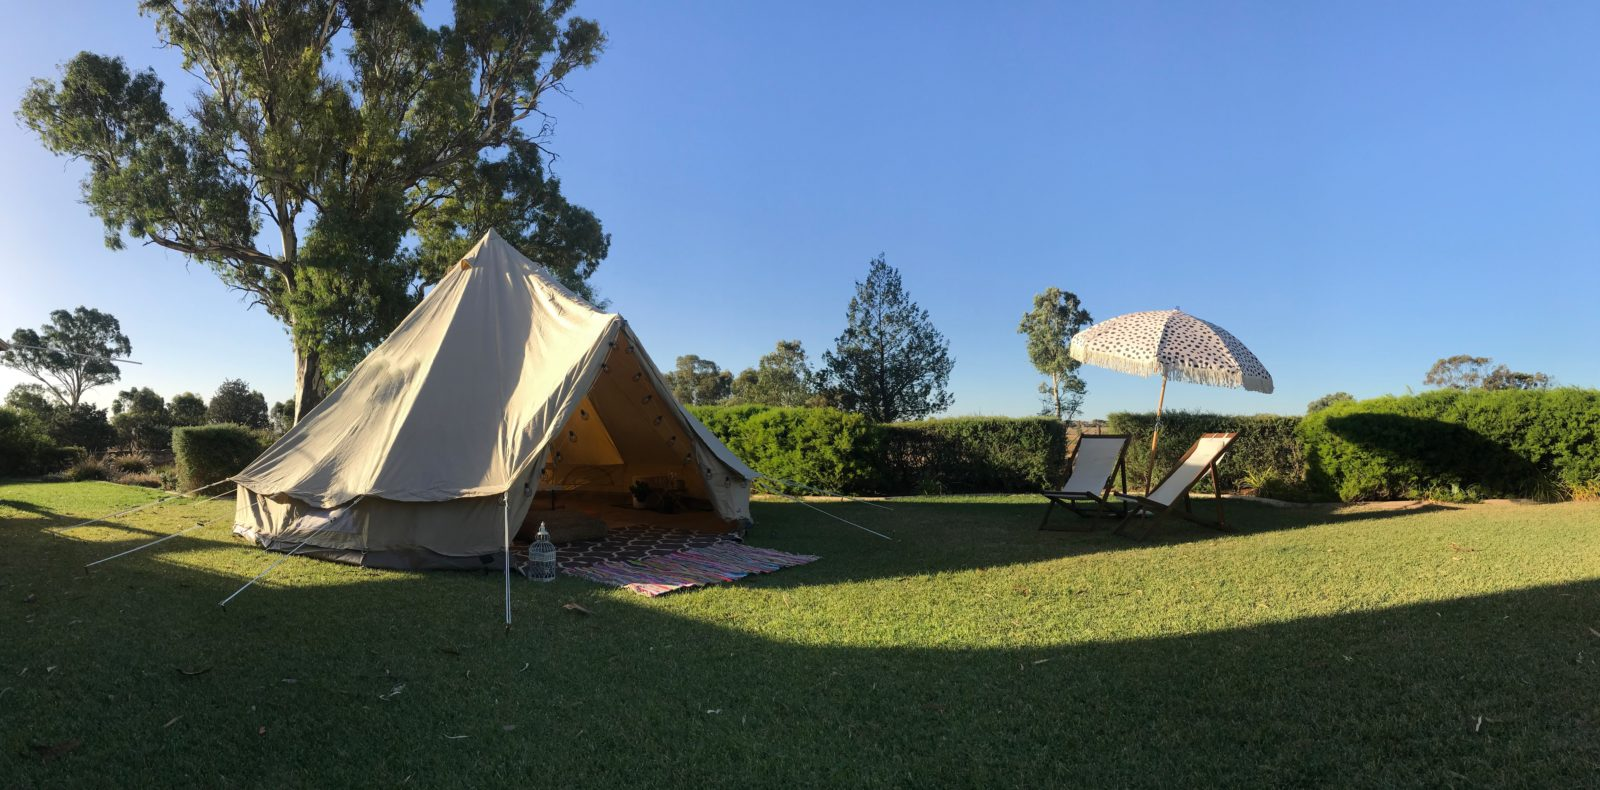 Glamping - Nook & Nectar - Clare Valley - Southern Flinders Ranges - Bell Tents - Popup Bell Tent